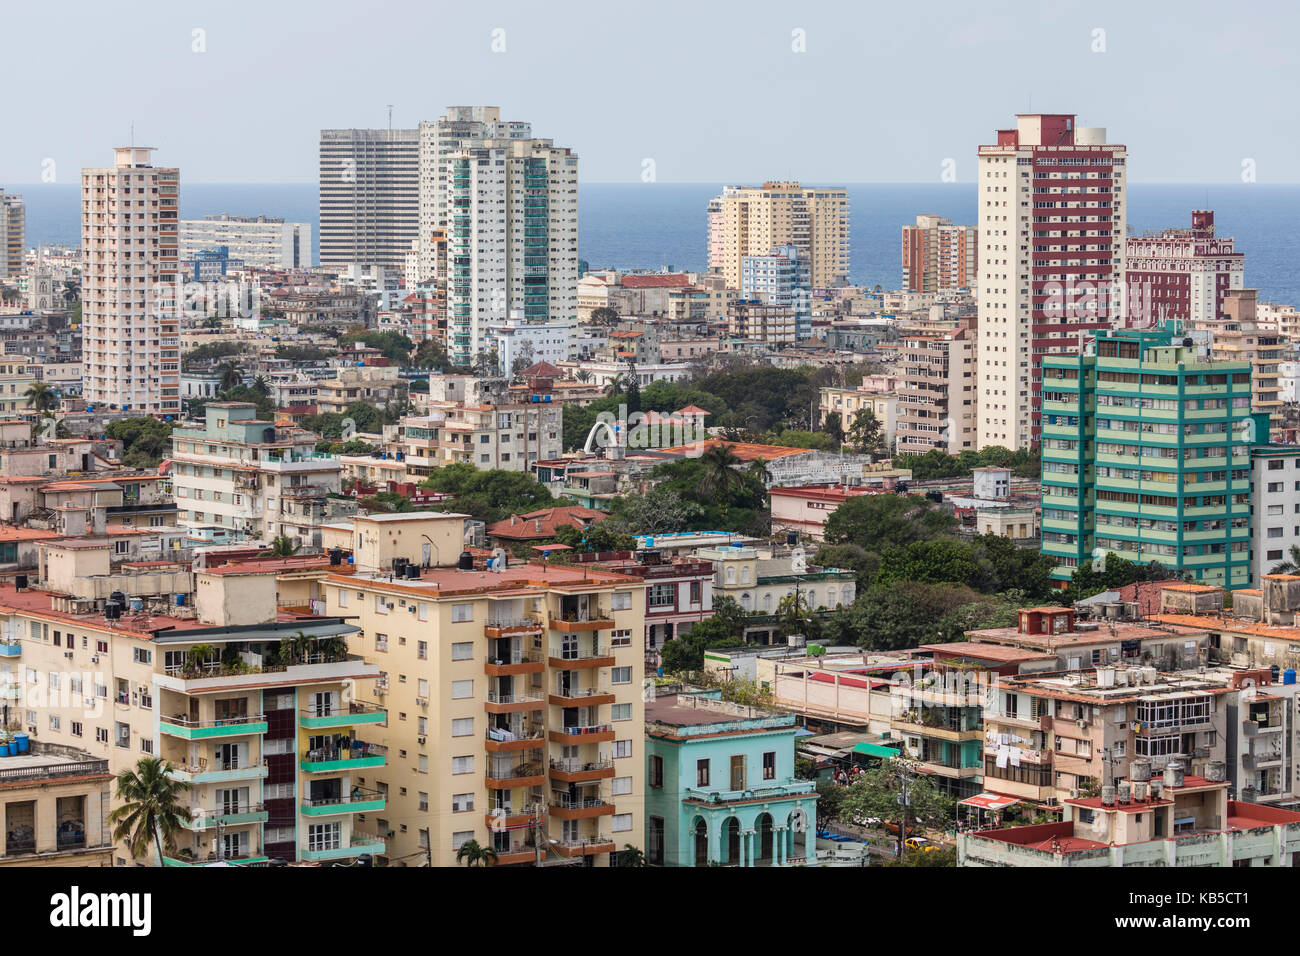 Cityscape view looking west of the town of Vedado, taken from the roof of the Hotel Nacional, Havana, Cuba, Central - Stock Image